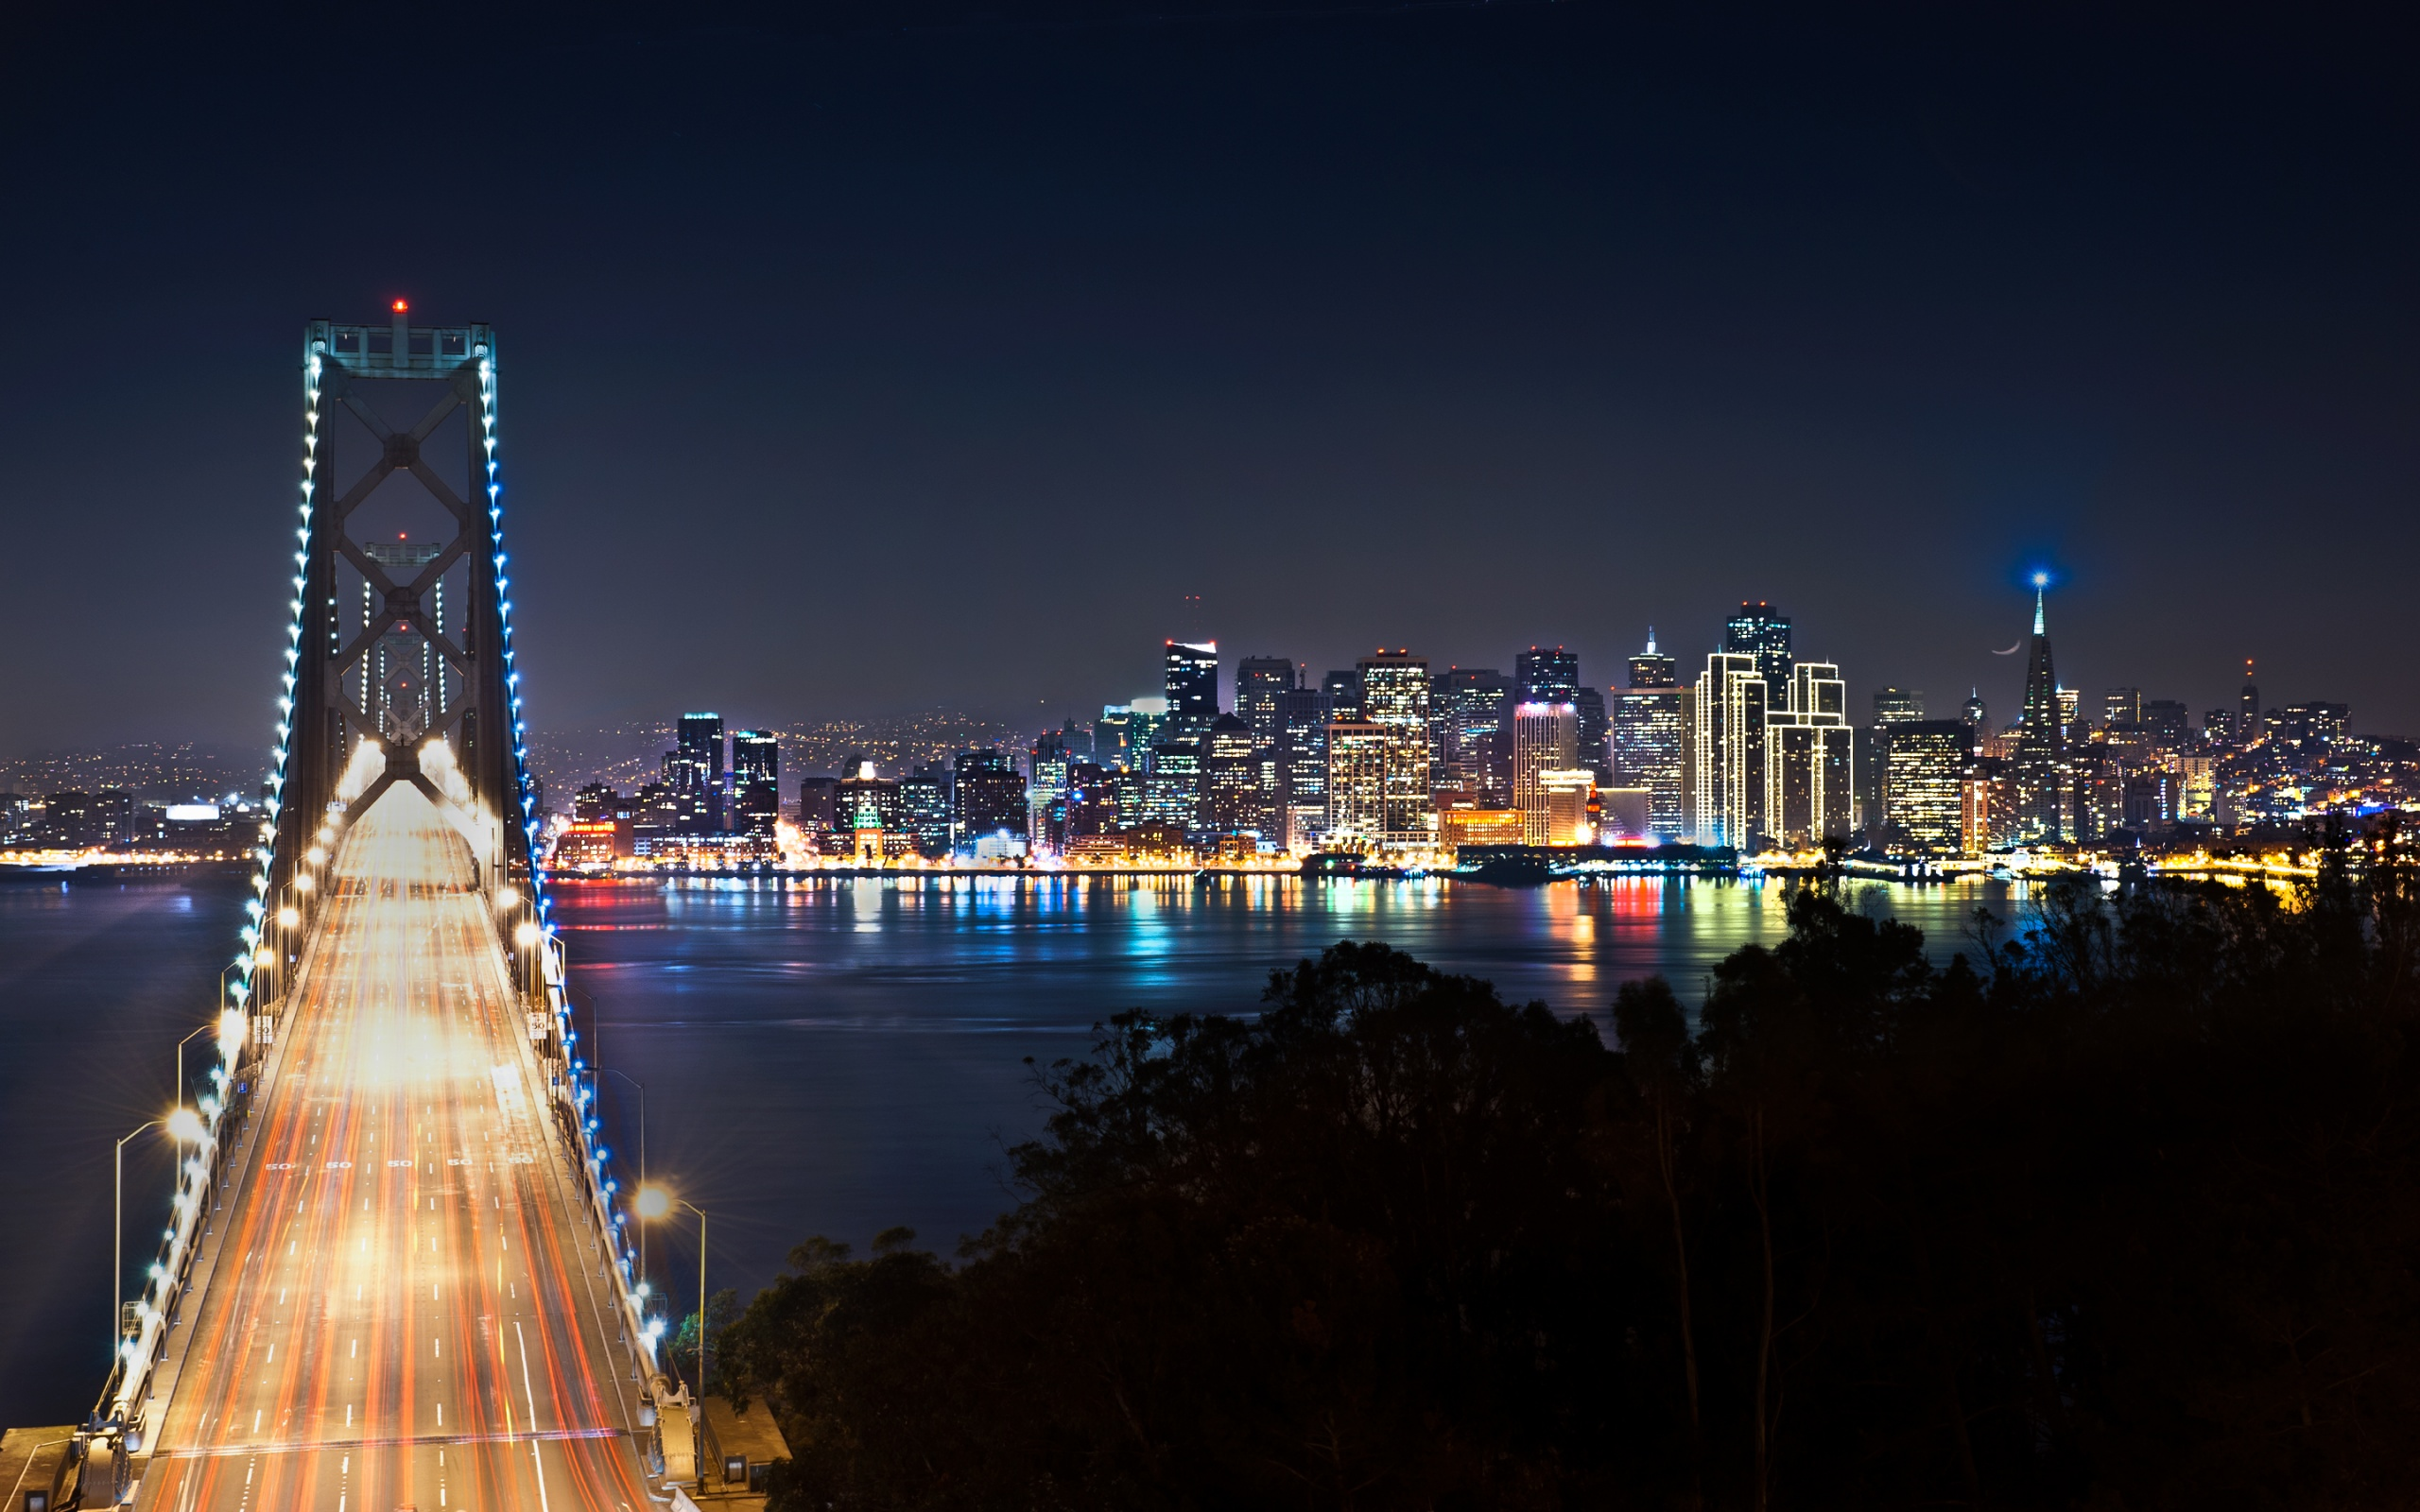 San Francisco at Night Wallpapers HD Wallpapers 2560x1600